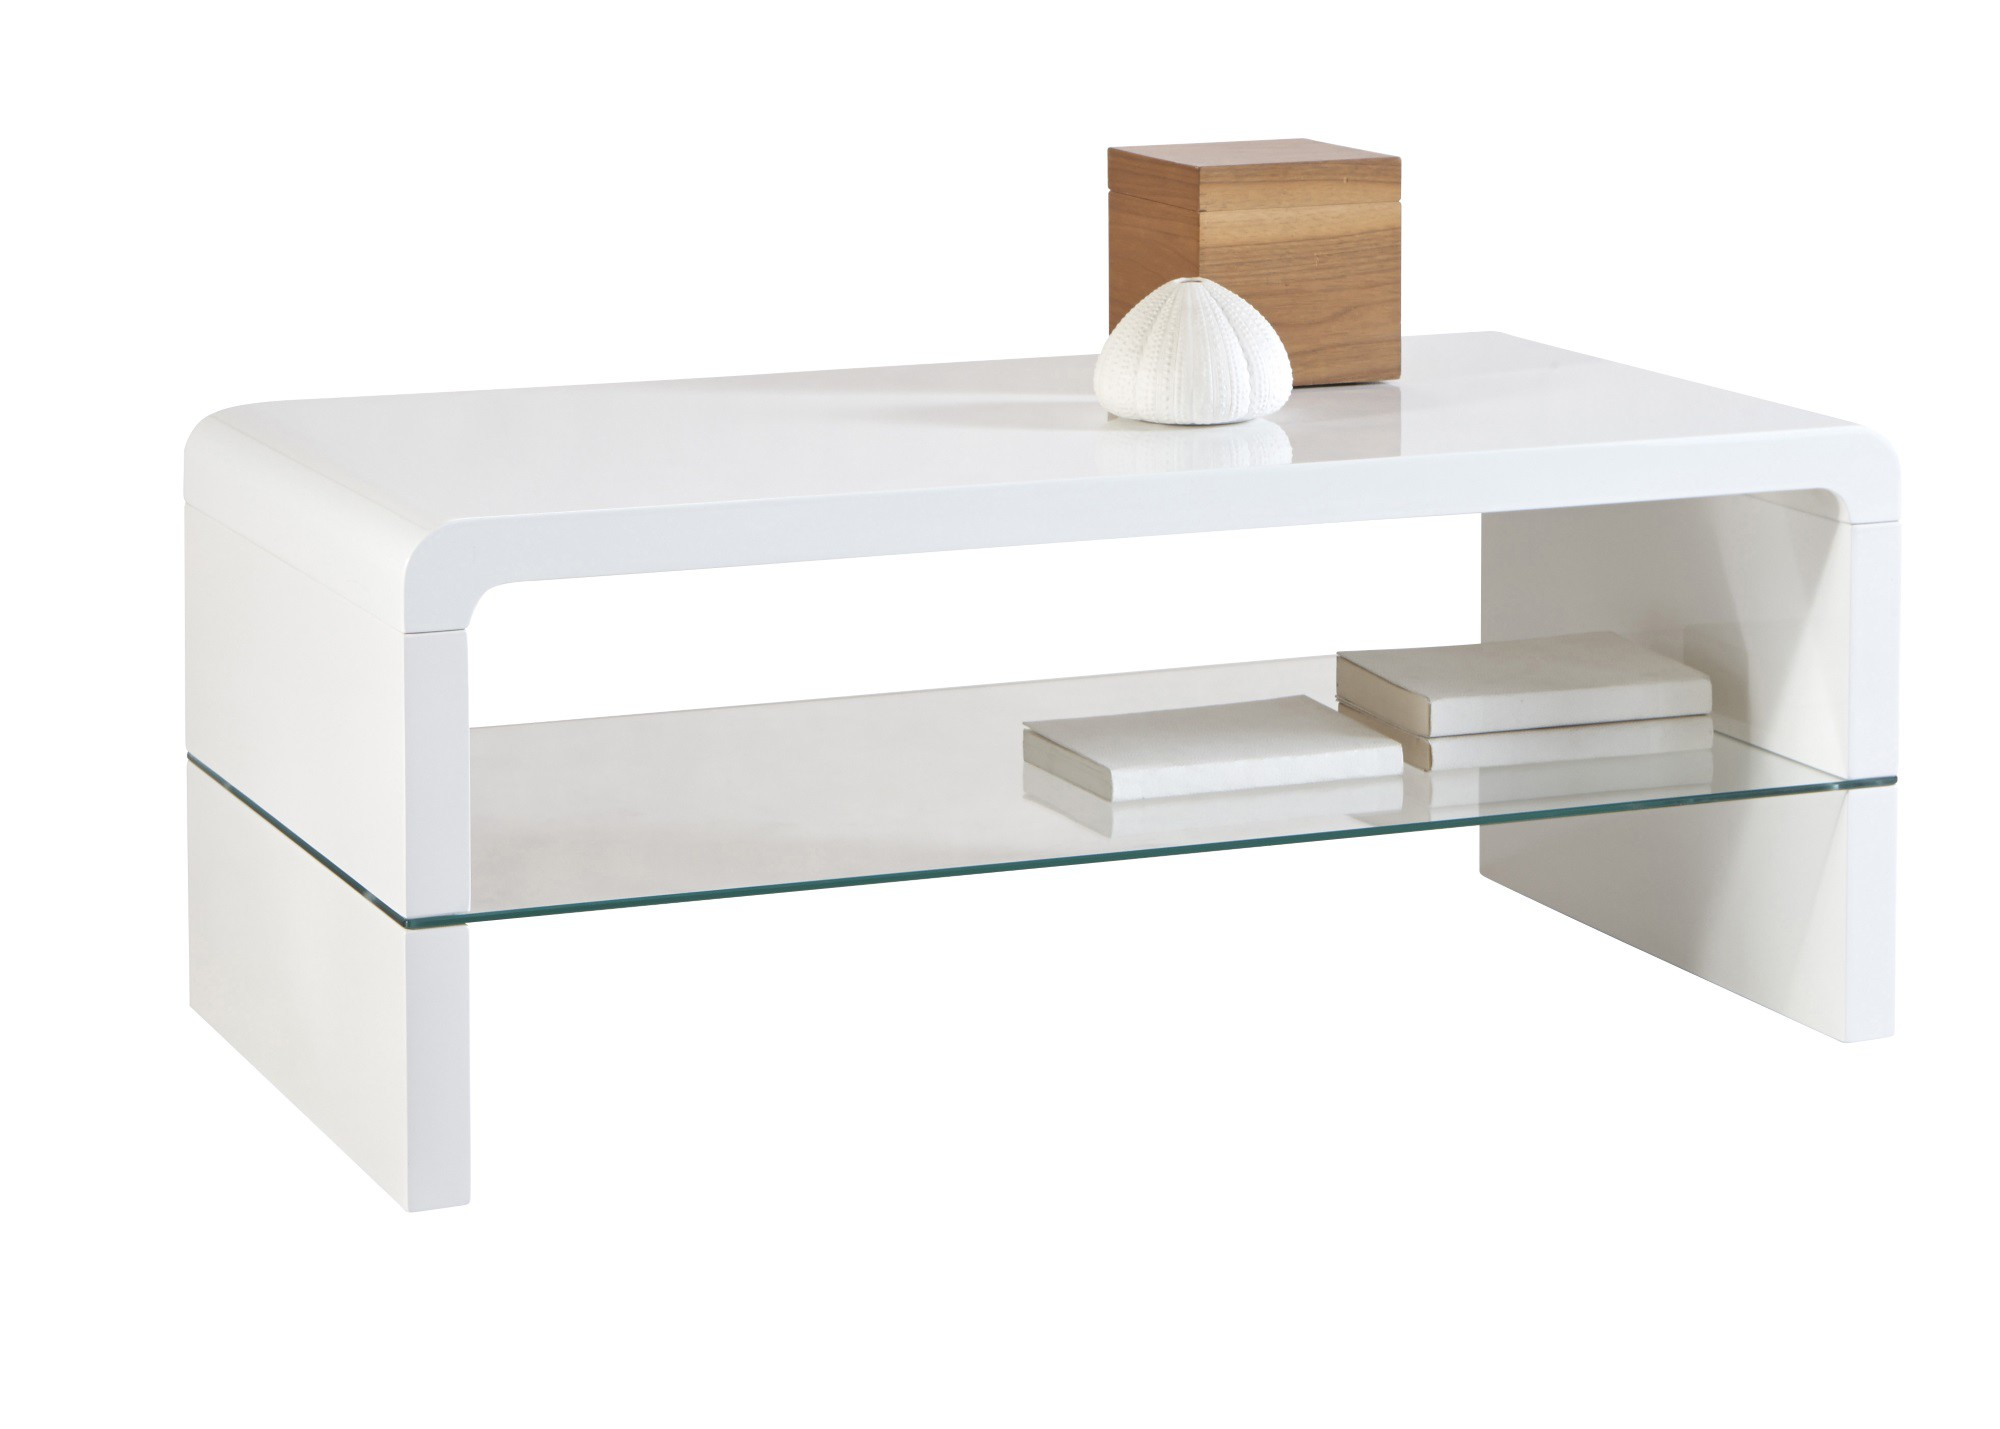 Table Basse Gigogne Blanc Table Basse Gigogne Laque Blanc Mobilier Design